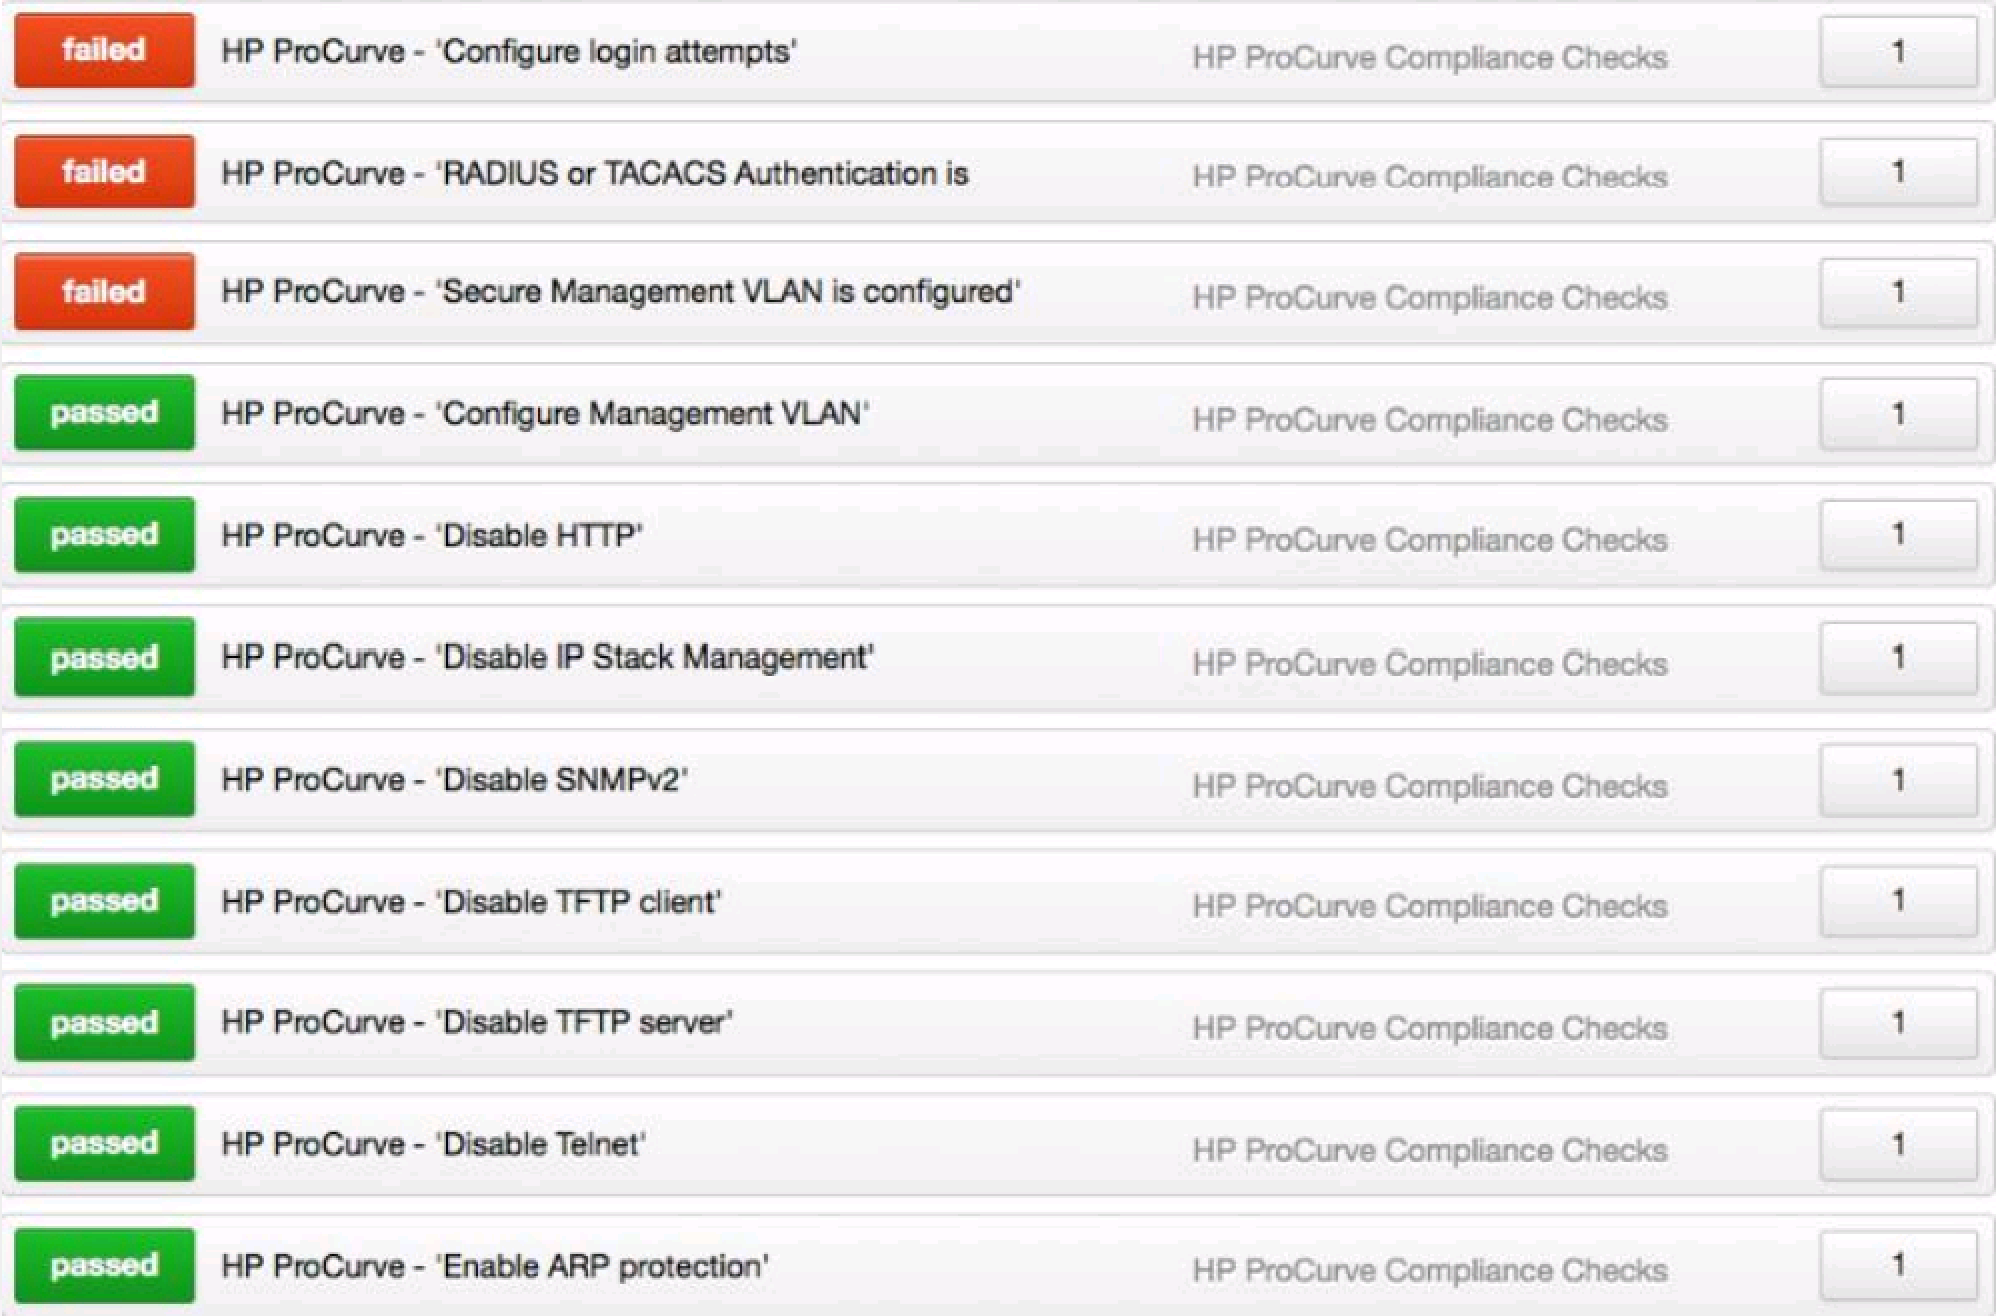 HP ProCurve Audit Compliance File Reference (Nessus